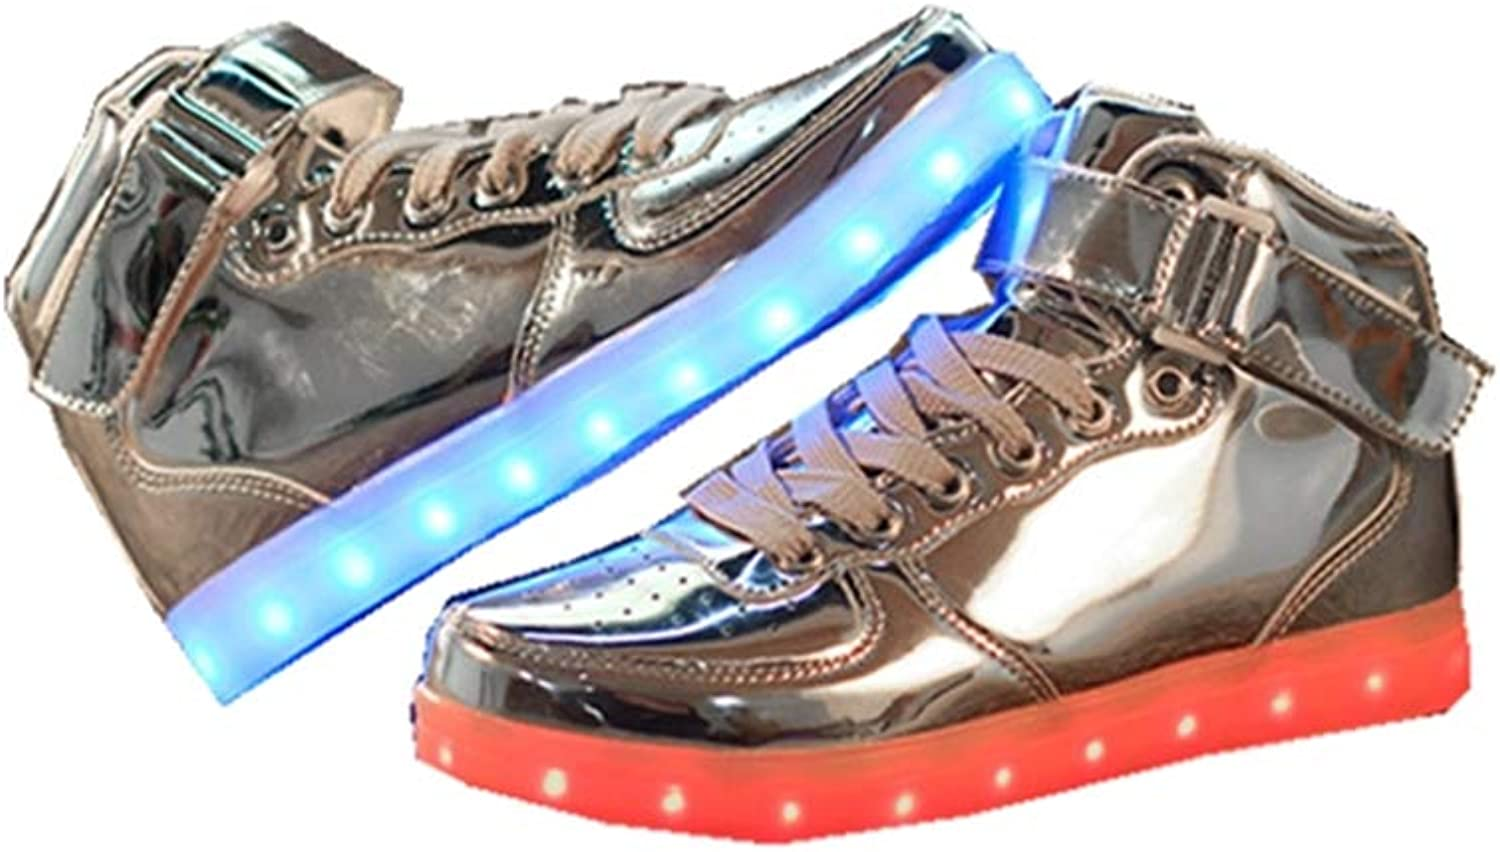 LUOBM LED Lighting shoes High Help gold and Silver USB Charging colorful Couple shoes